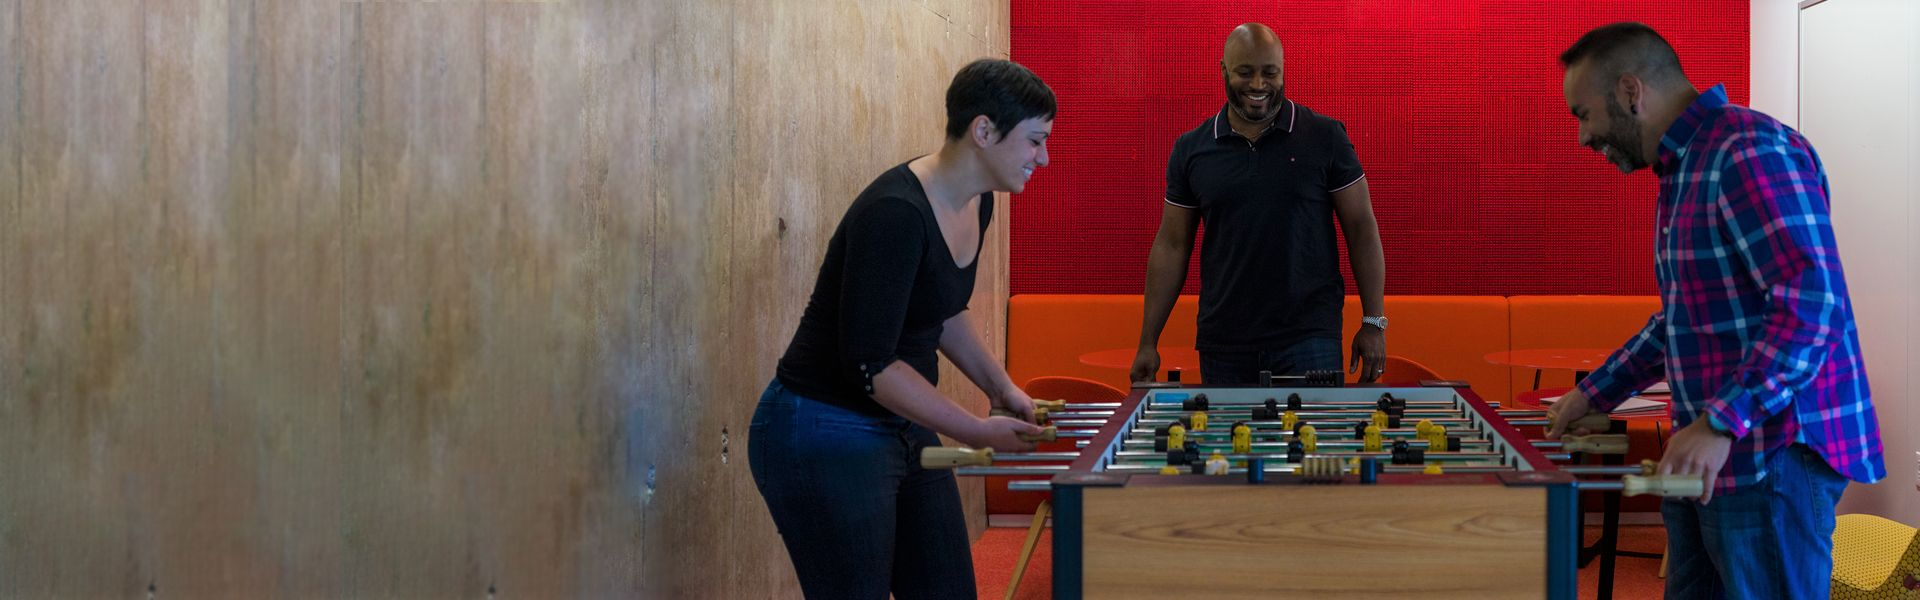 Photo of 3 students playing Foosball